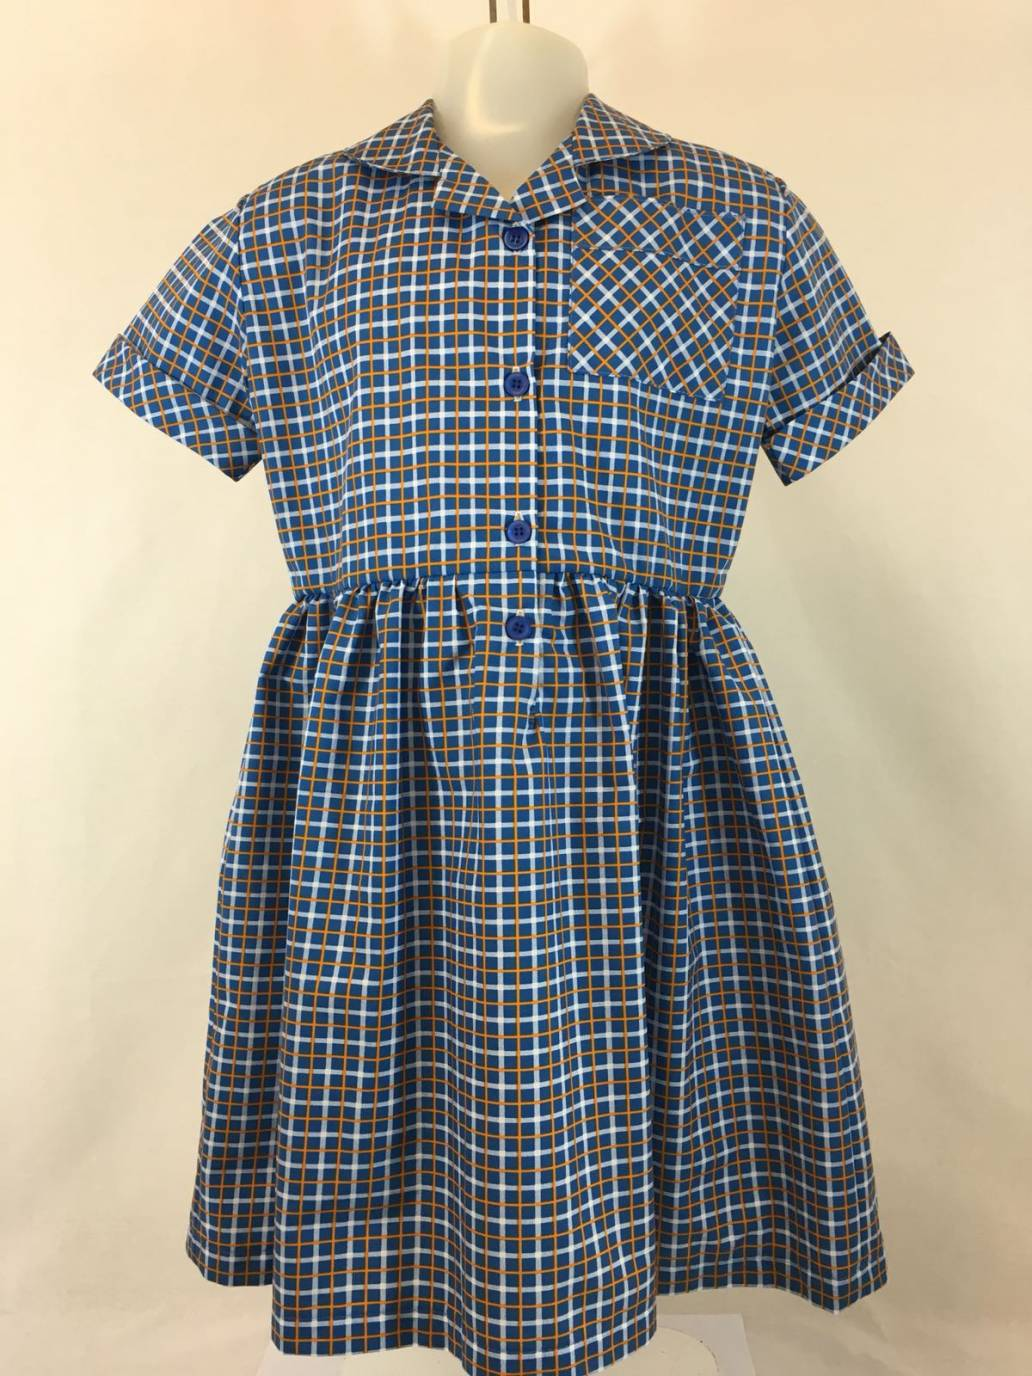 Cathedral School Summer Dress